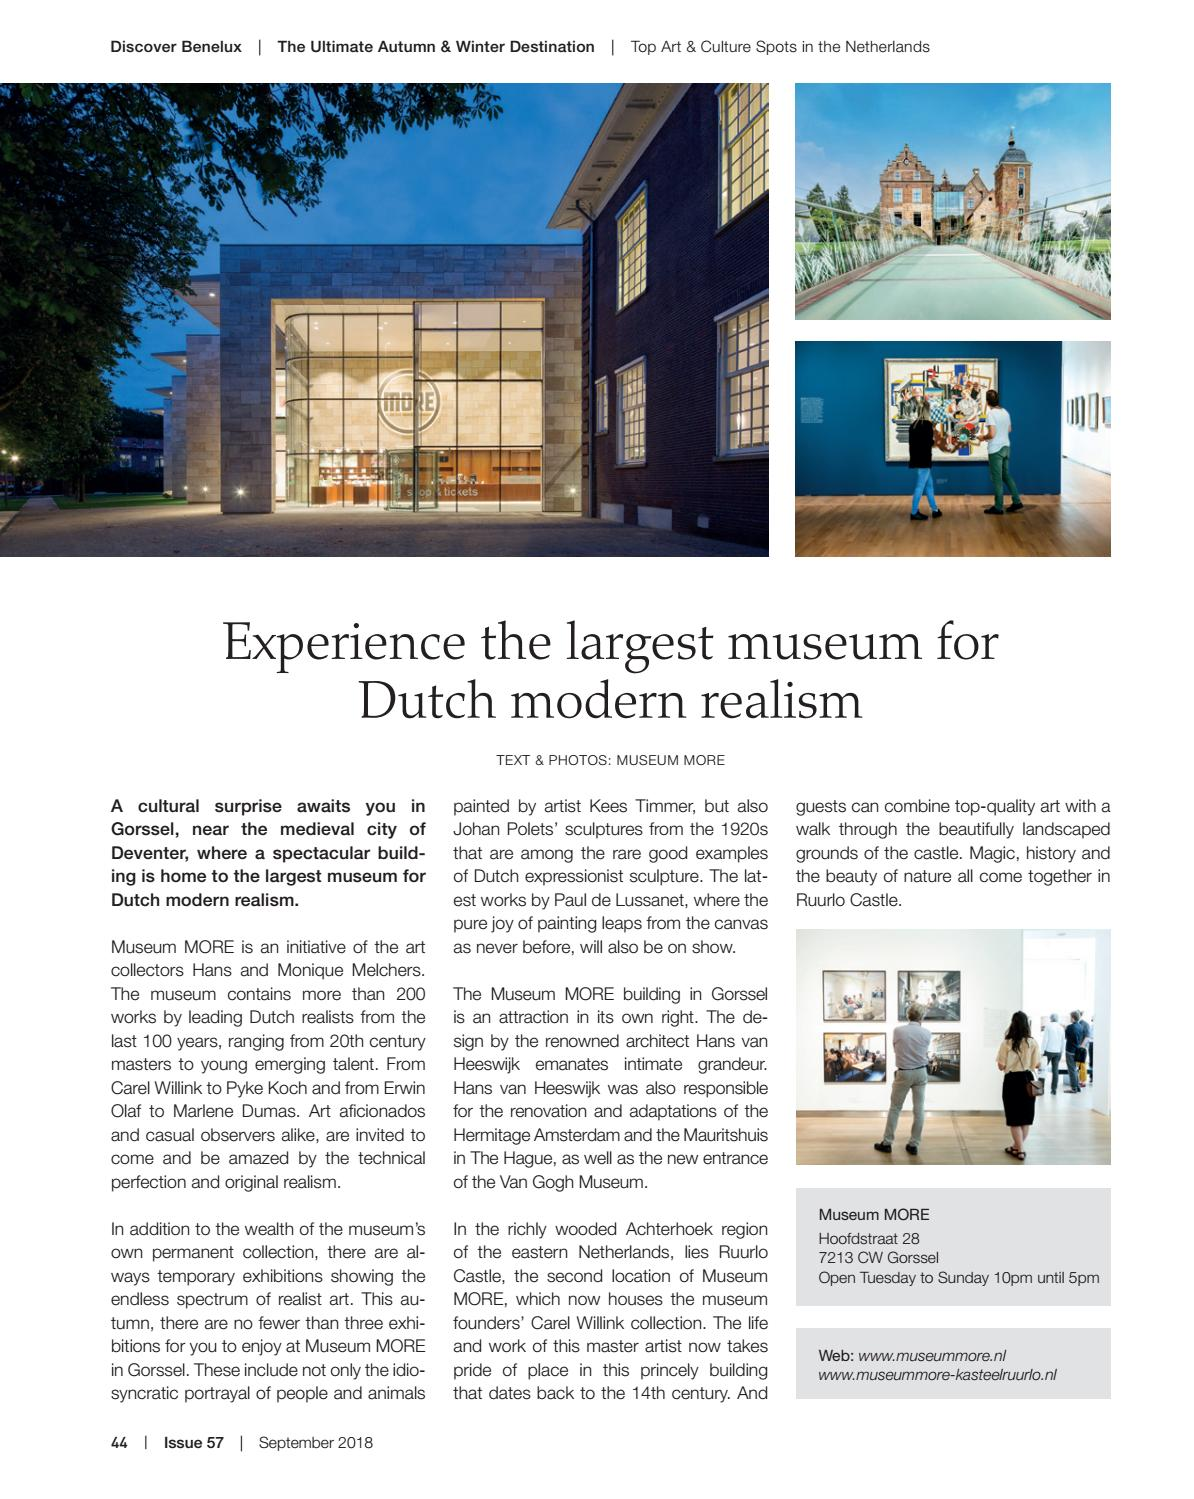 Discover Benelux, Issue 57, September 2018 by Scan Group - issuu